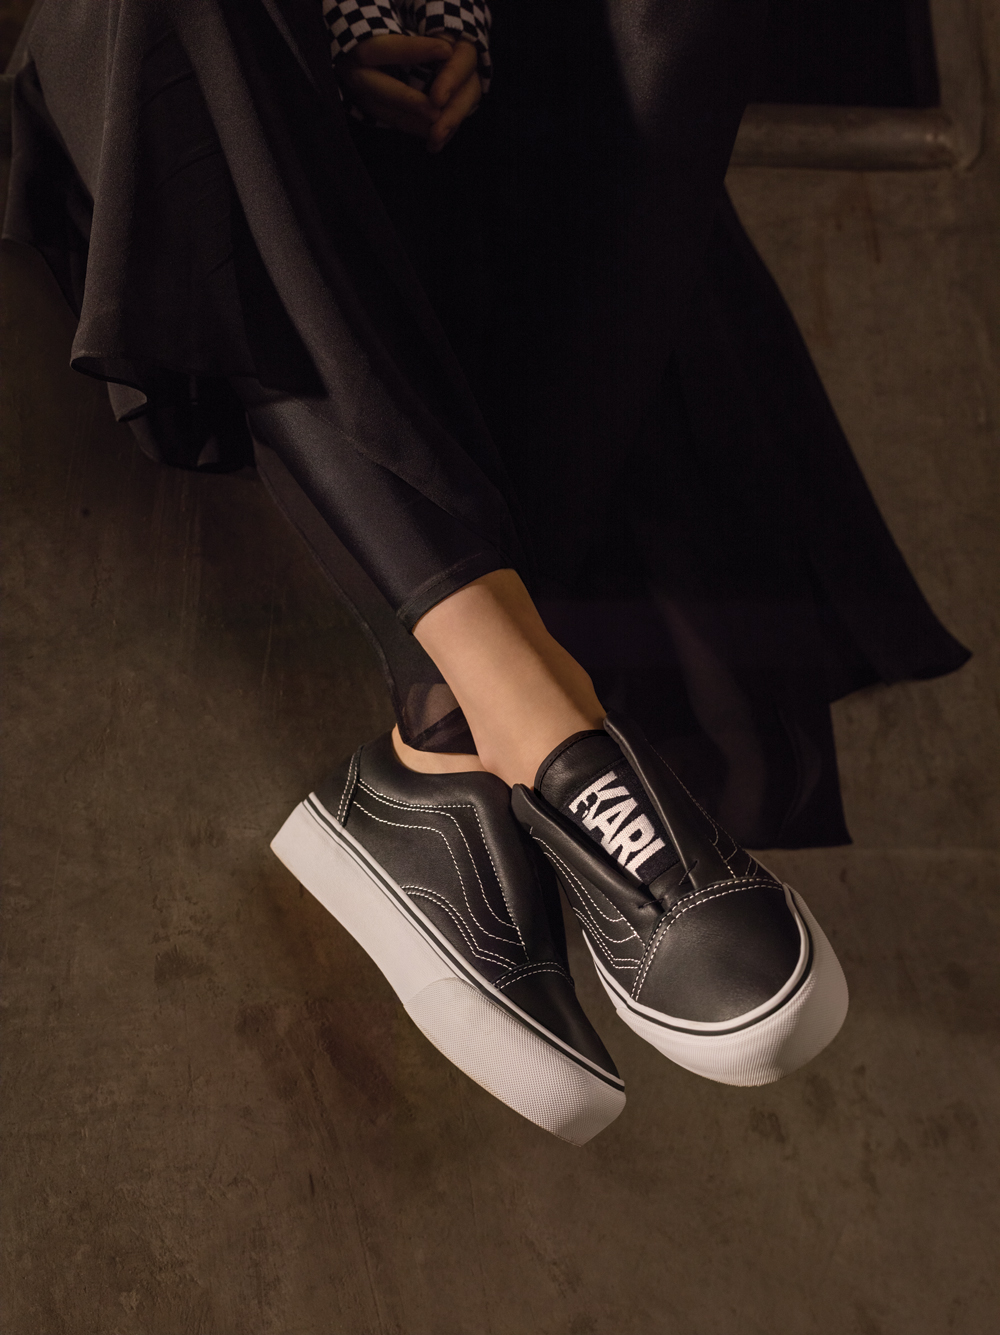 2b3d21070cf1 The Vans x Karl Lagerfeld Women s Collection will be available in selected  size  stores on Thursday September 9th